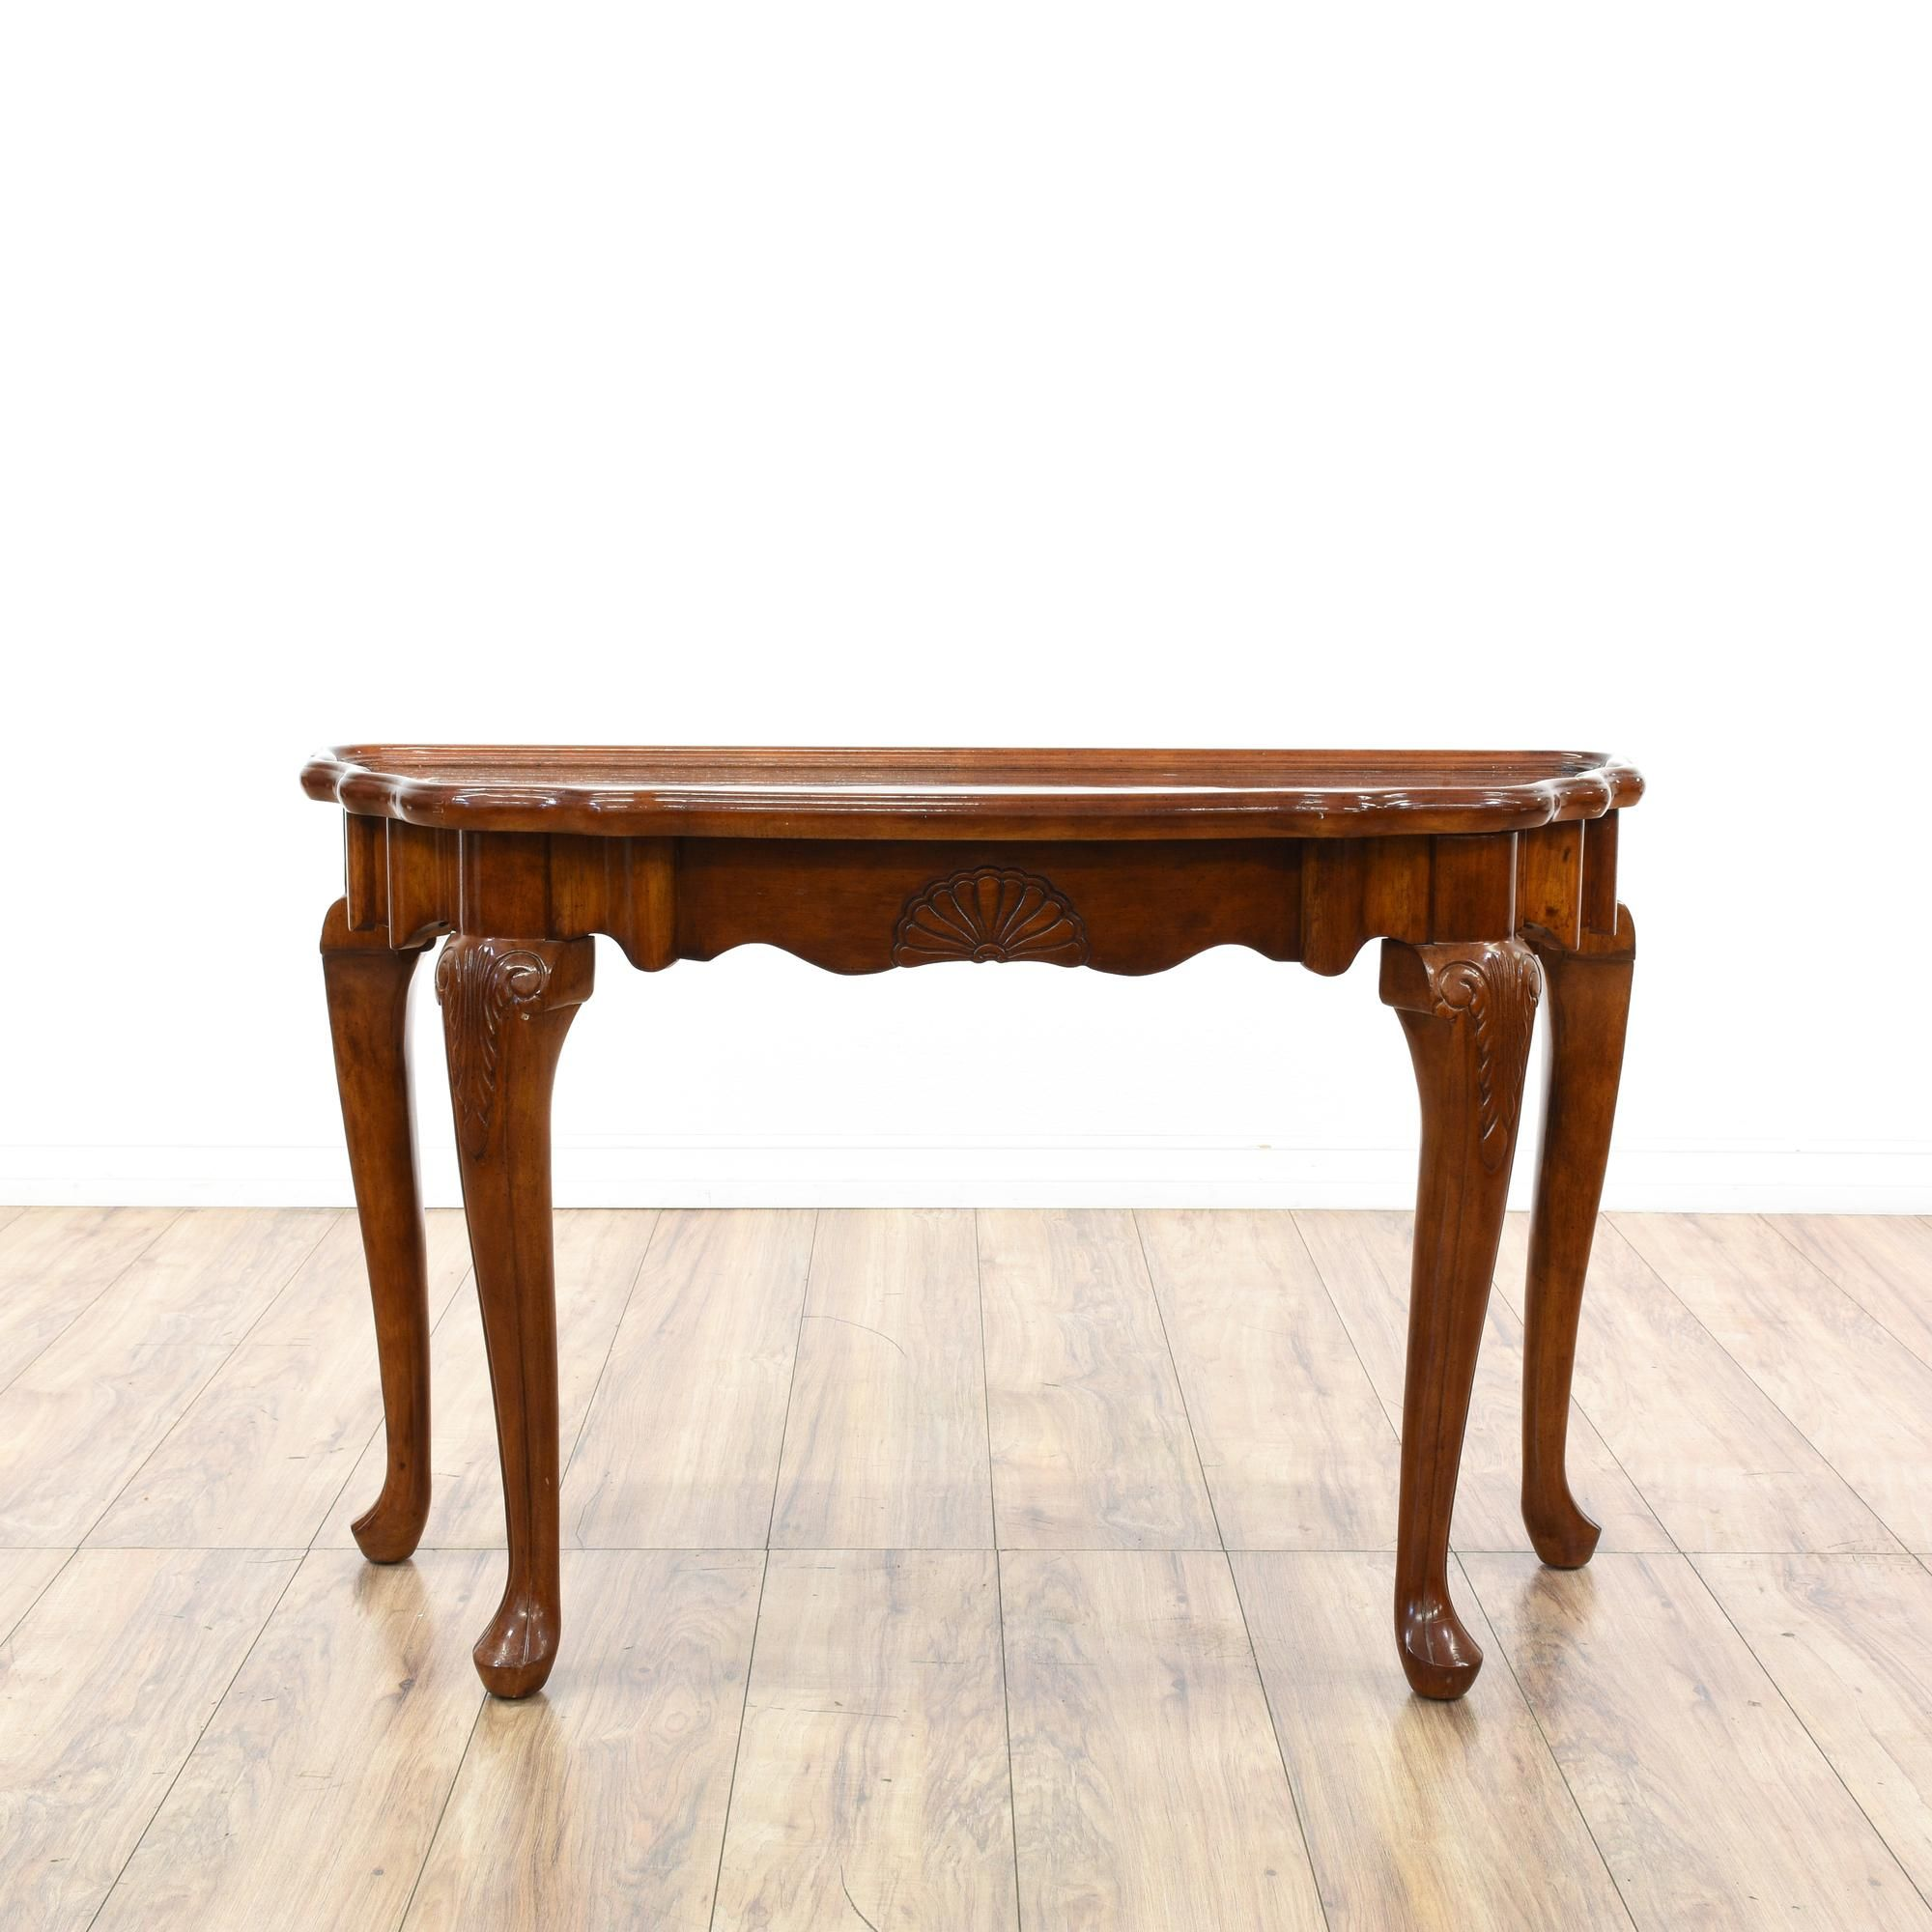 This Queen Anne Style Console Table Is Featured In A Solid Wood With